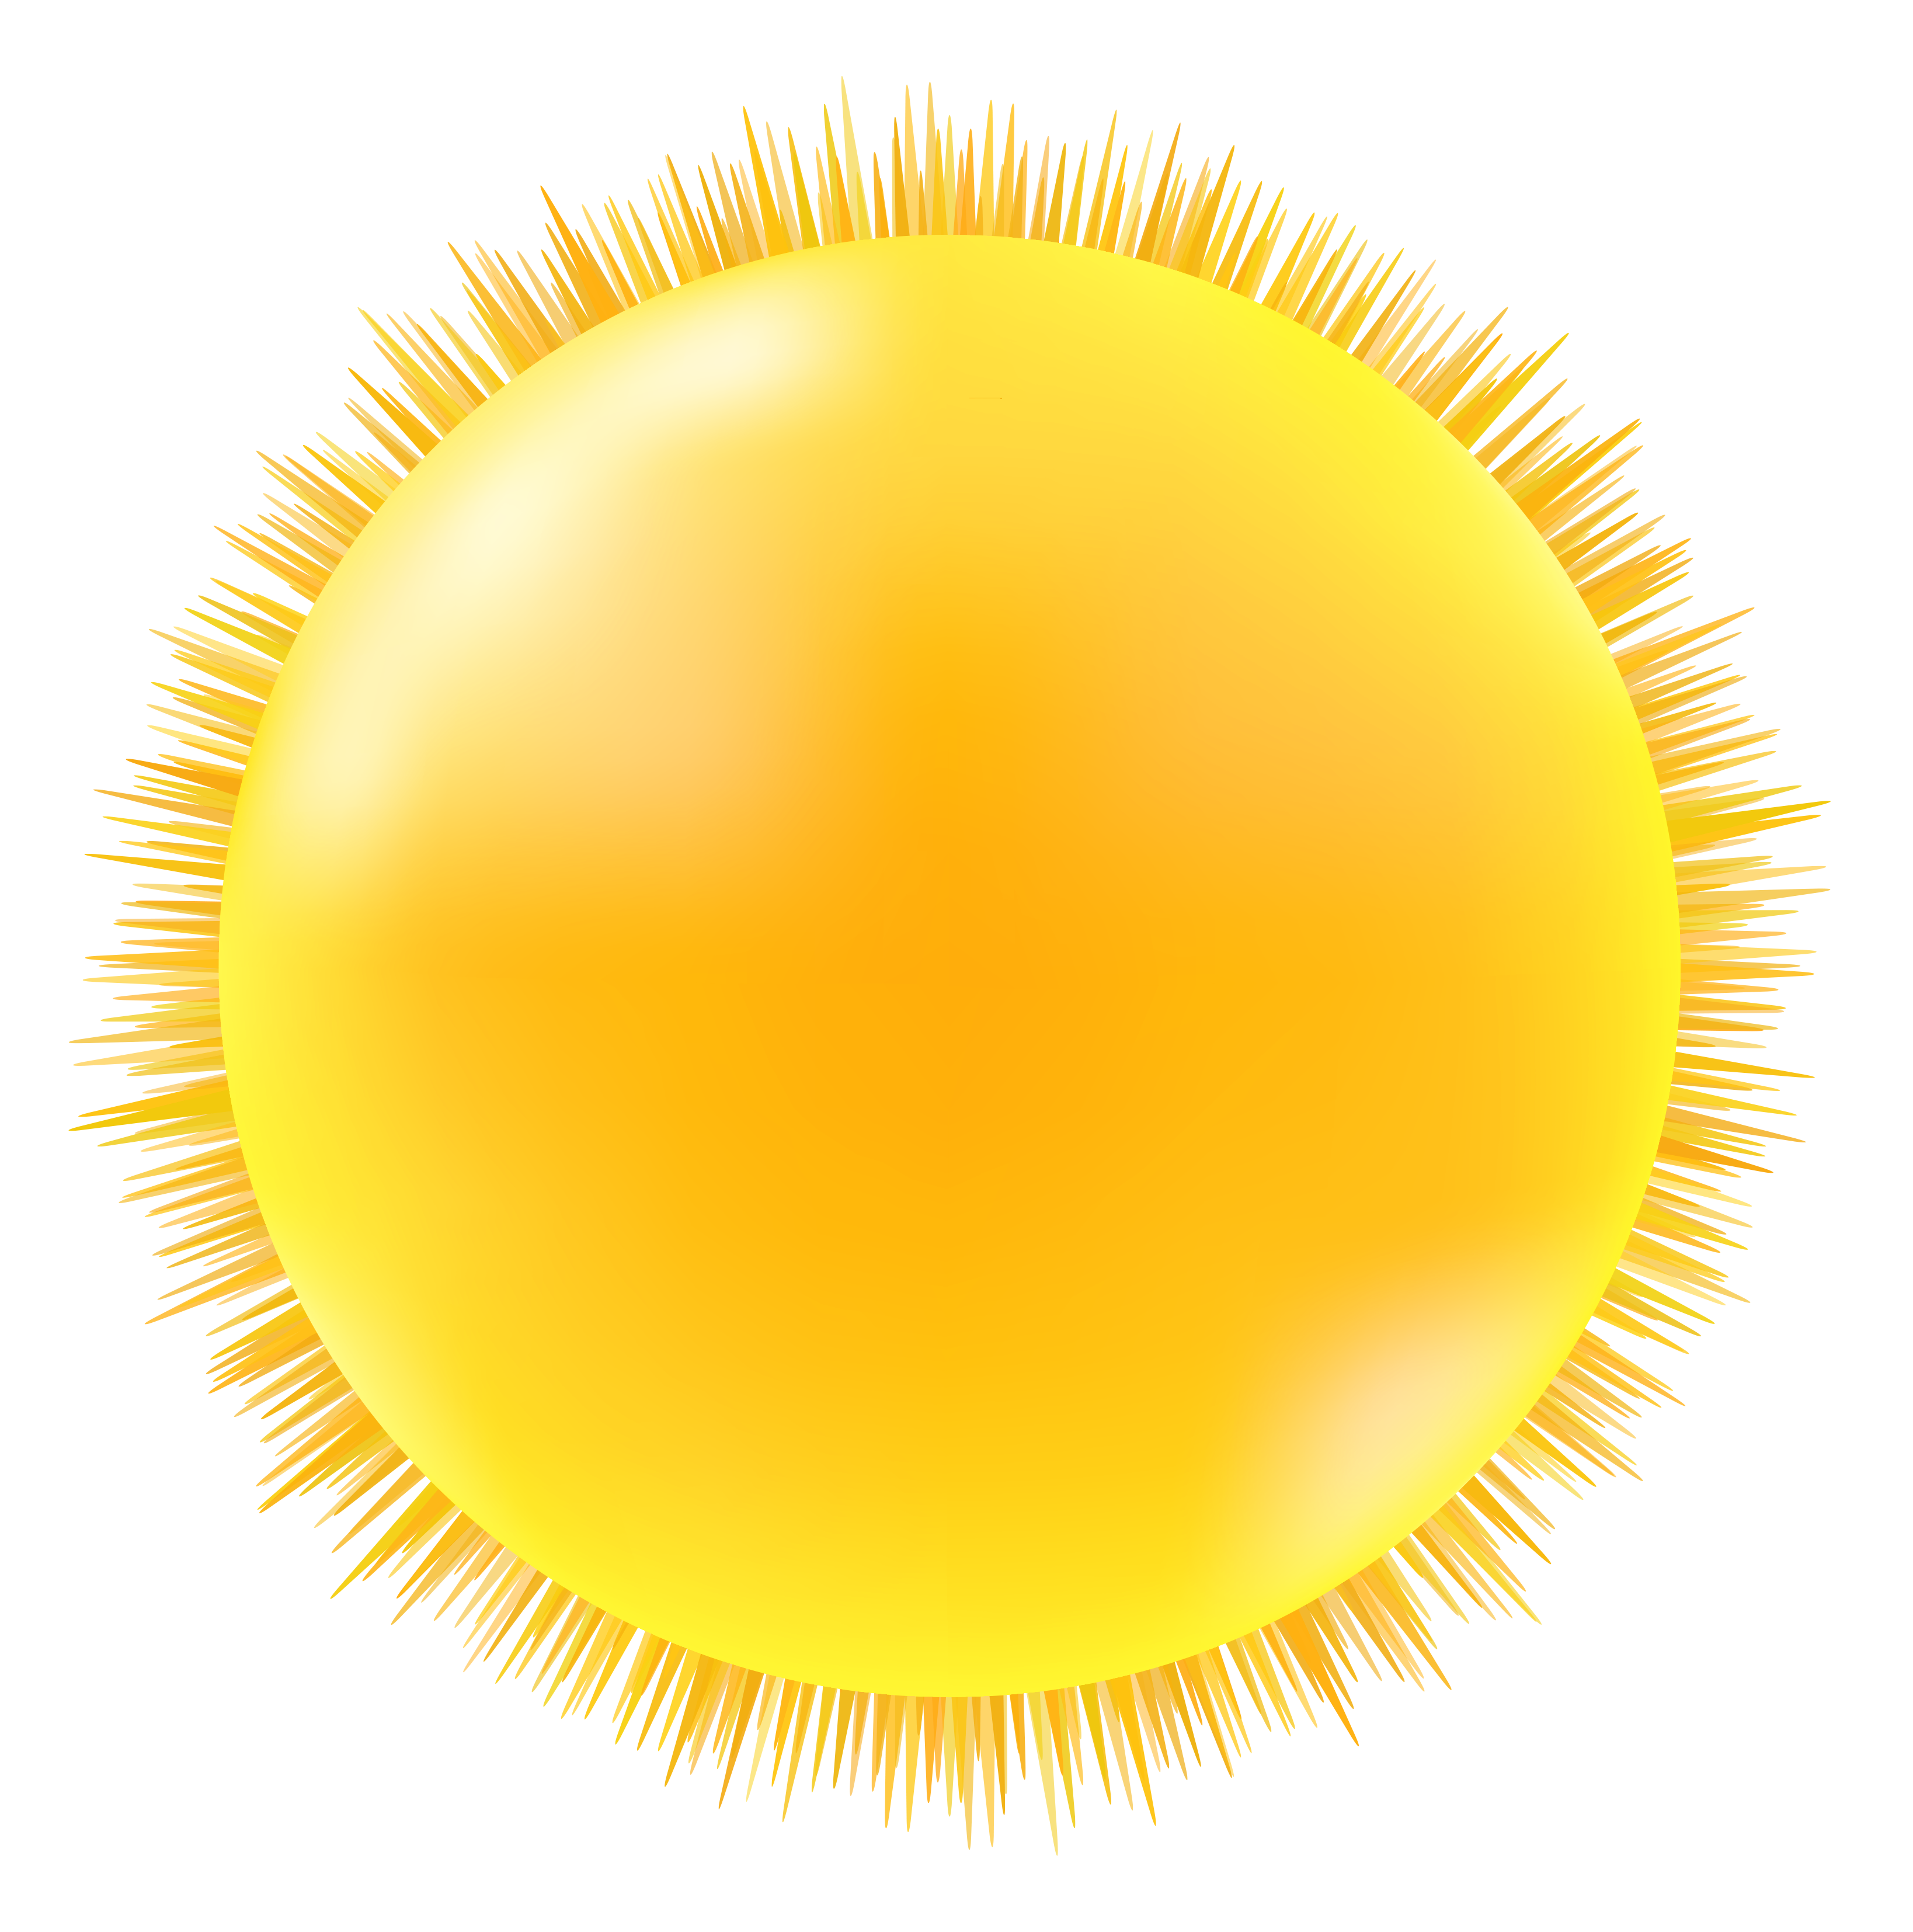 Sun and orange background images